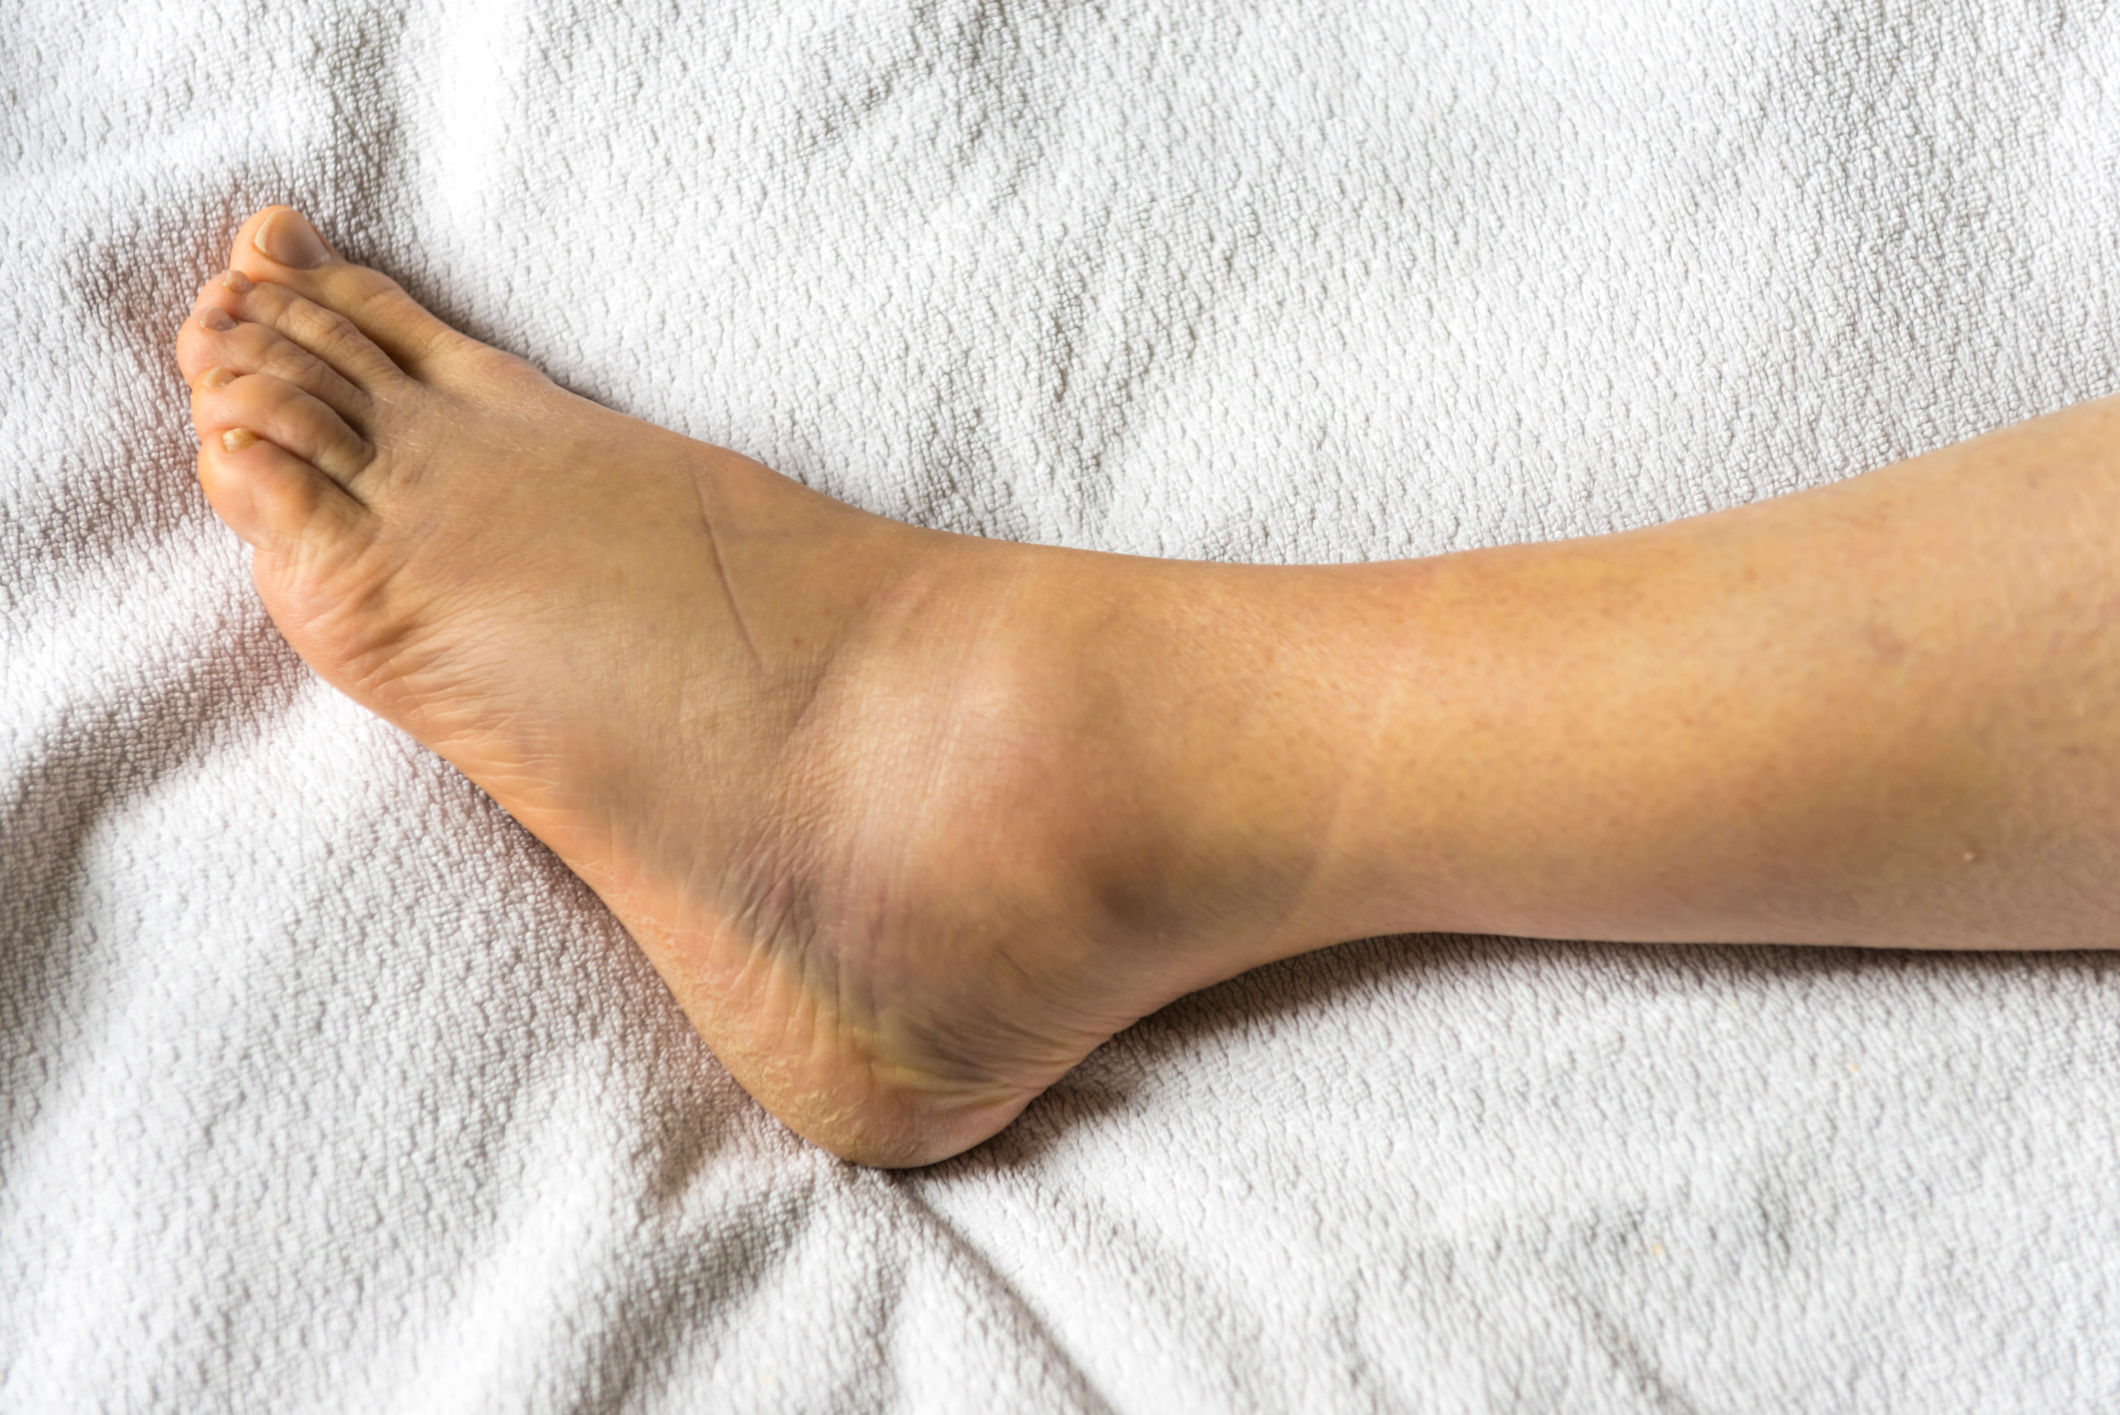 12 Reasons You Have Swollen Ankles, According to Doctors